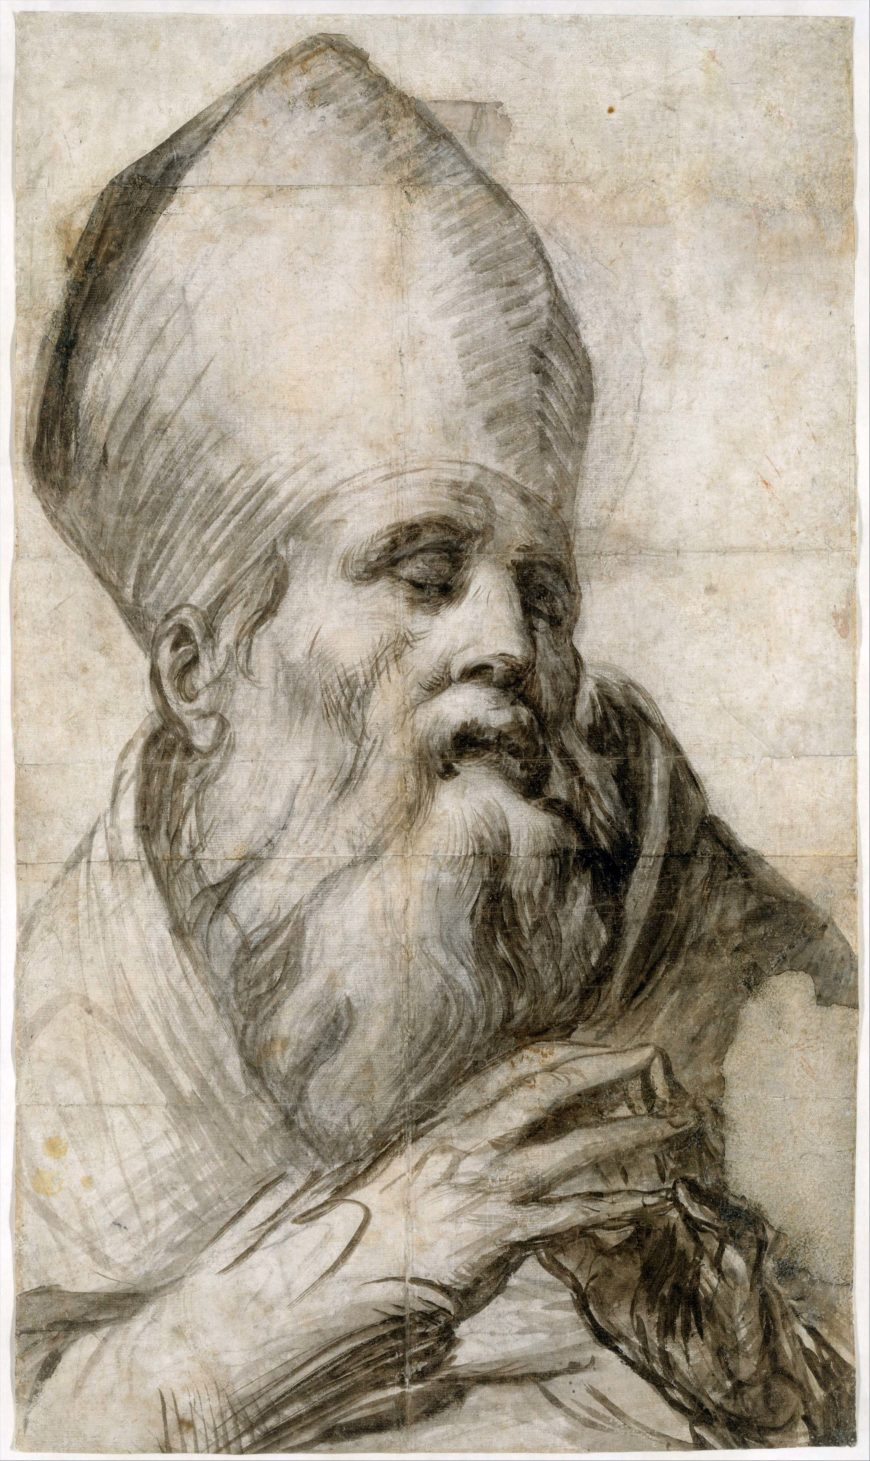 Parmigianino, Bishop Saint in Bust-Length (Cartoon for an Altarpiece), 1503–40, brush and brown wash over black chalk, 71.8 x 40.8 cm (The Metropolitan Museum of Art)